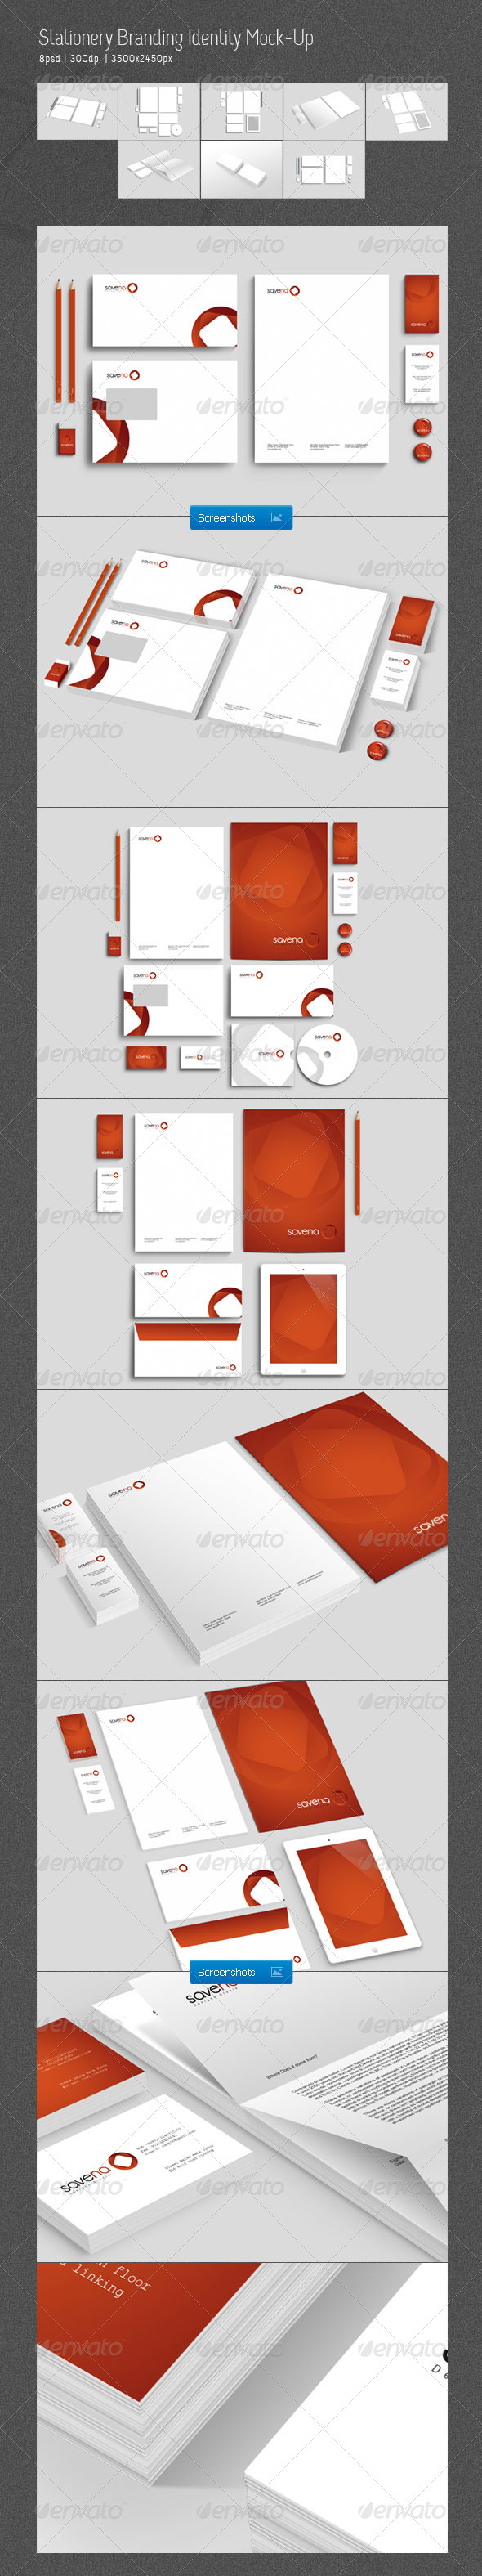 Stationery Branding Identity Mock-Up - Stationery Print